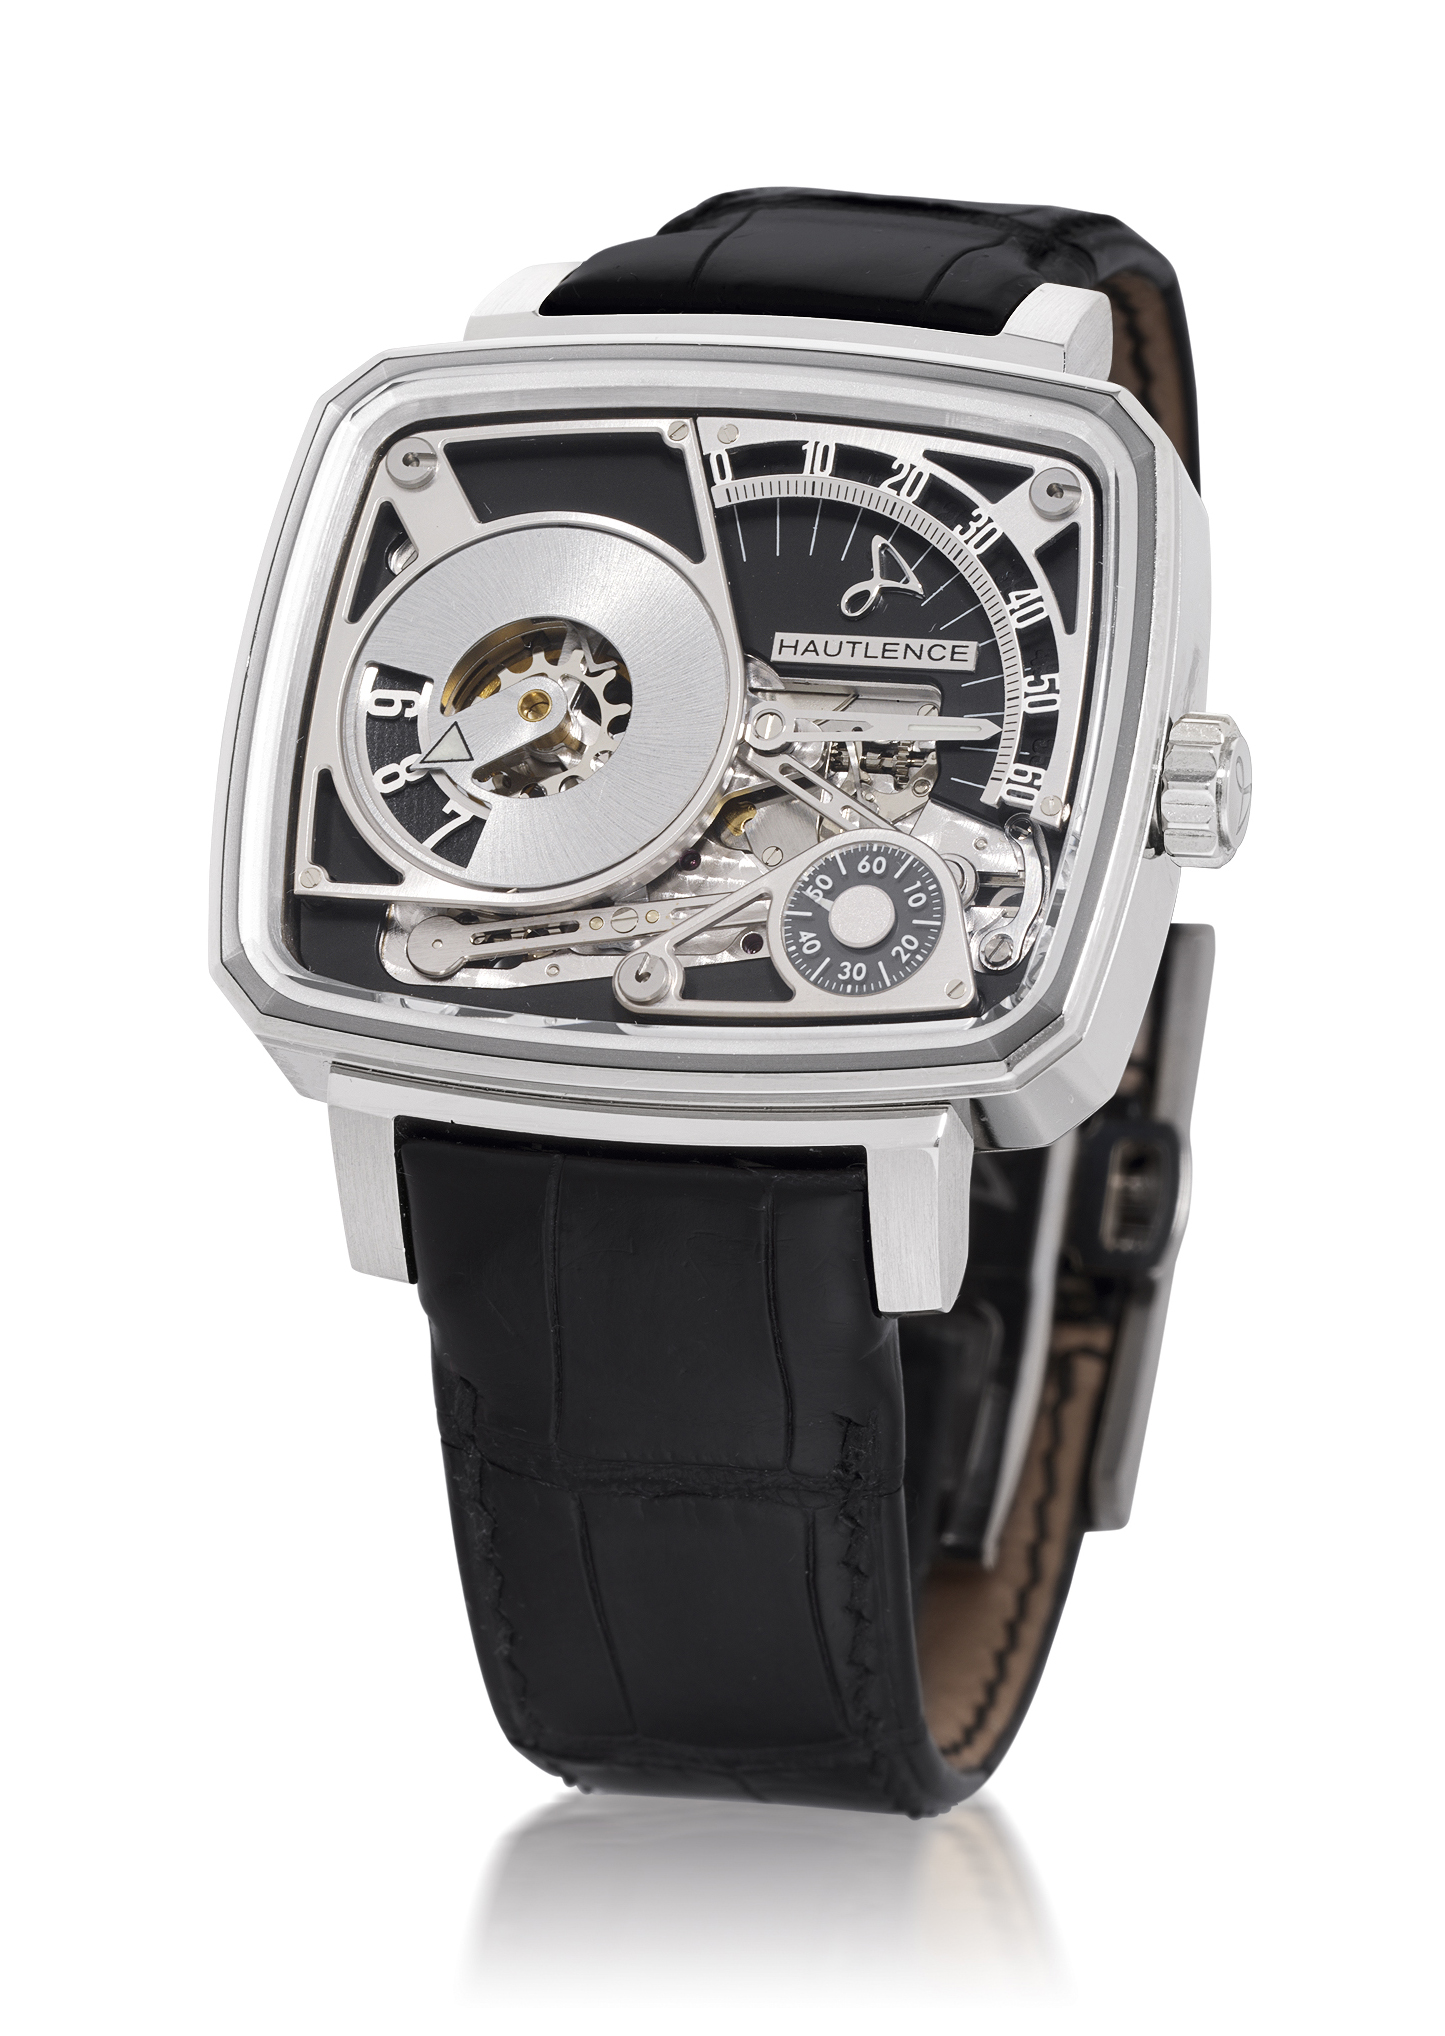 HAUTLENCE, HL08  WHITE GOLD MANUALLY-WOUND WRISTWATCH WITH RETROGRADE MINUTES DISPLAY, LIMITED EDITION OF 88